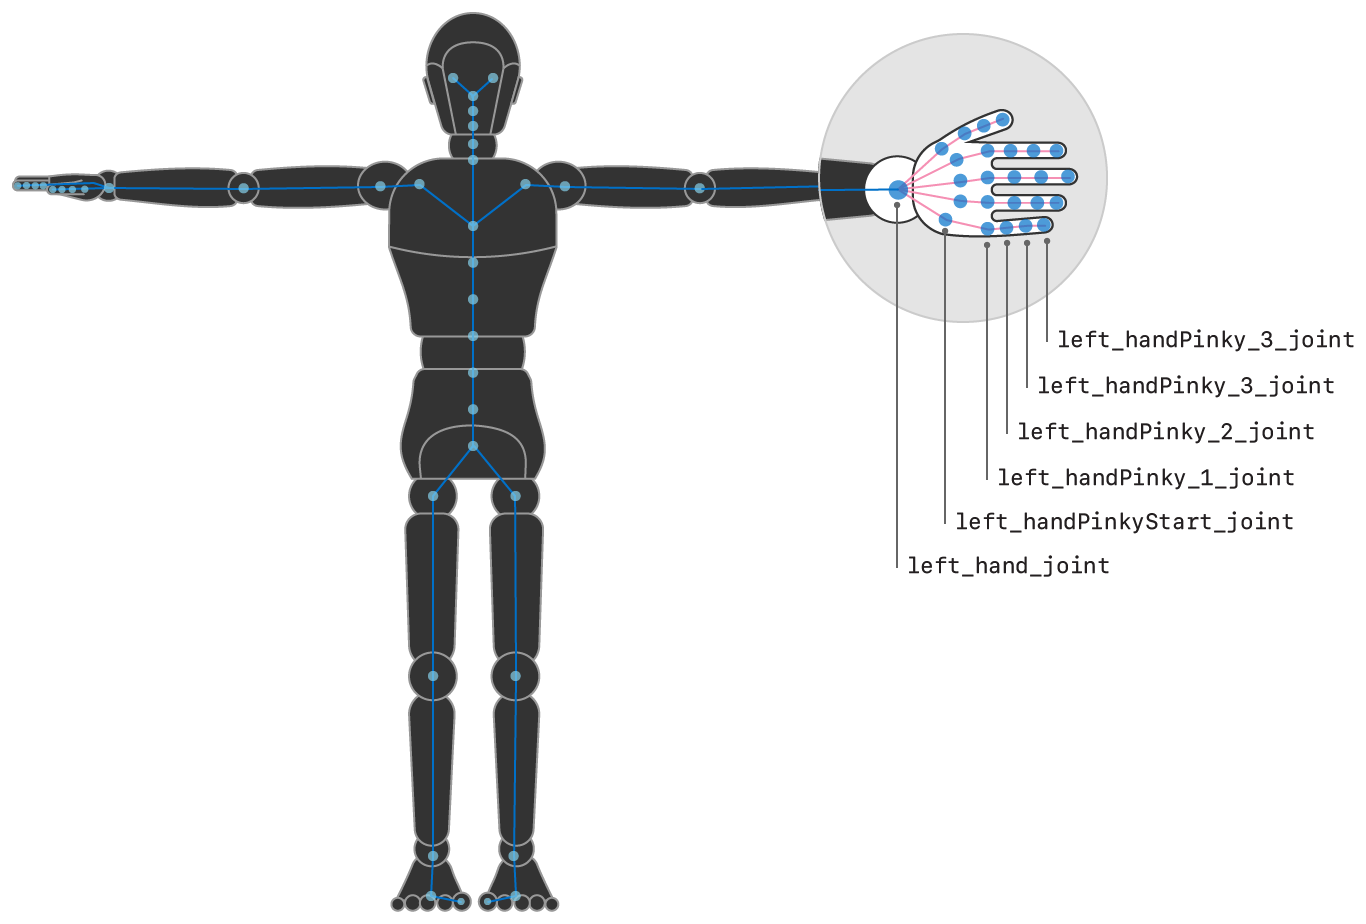 Illustration showing the left hand of the humanoid figure highlighted, with some of the joints named.